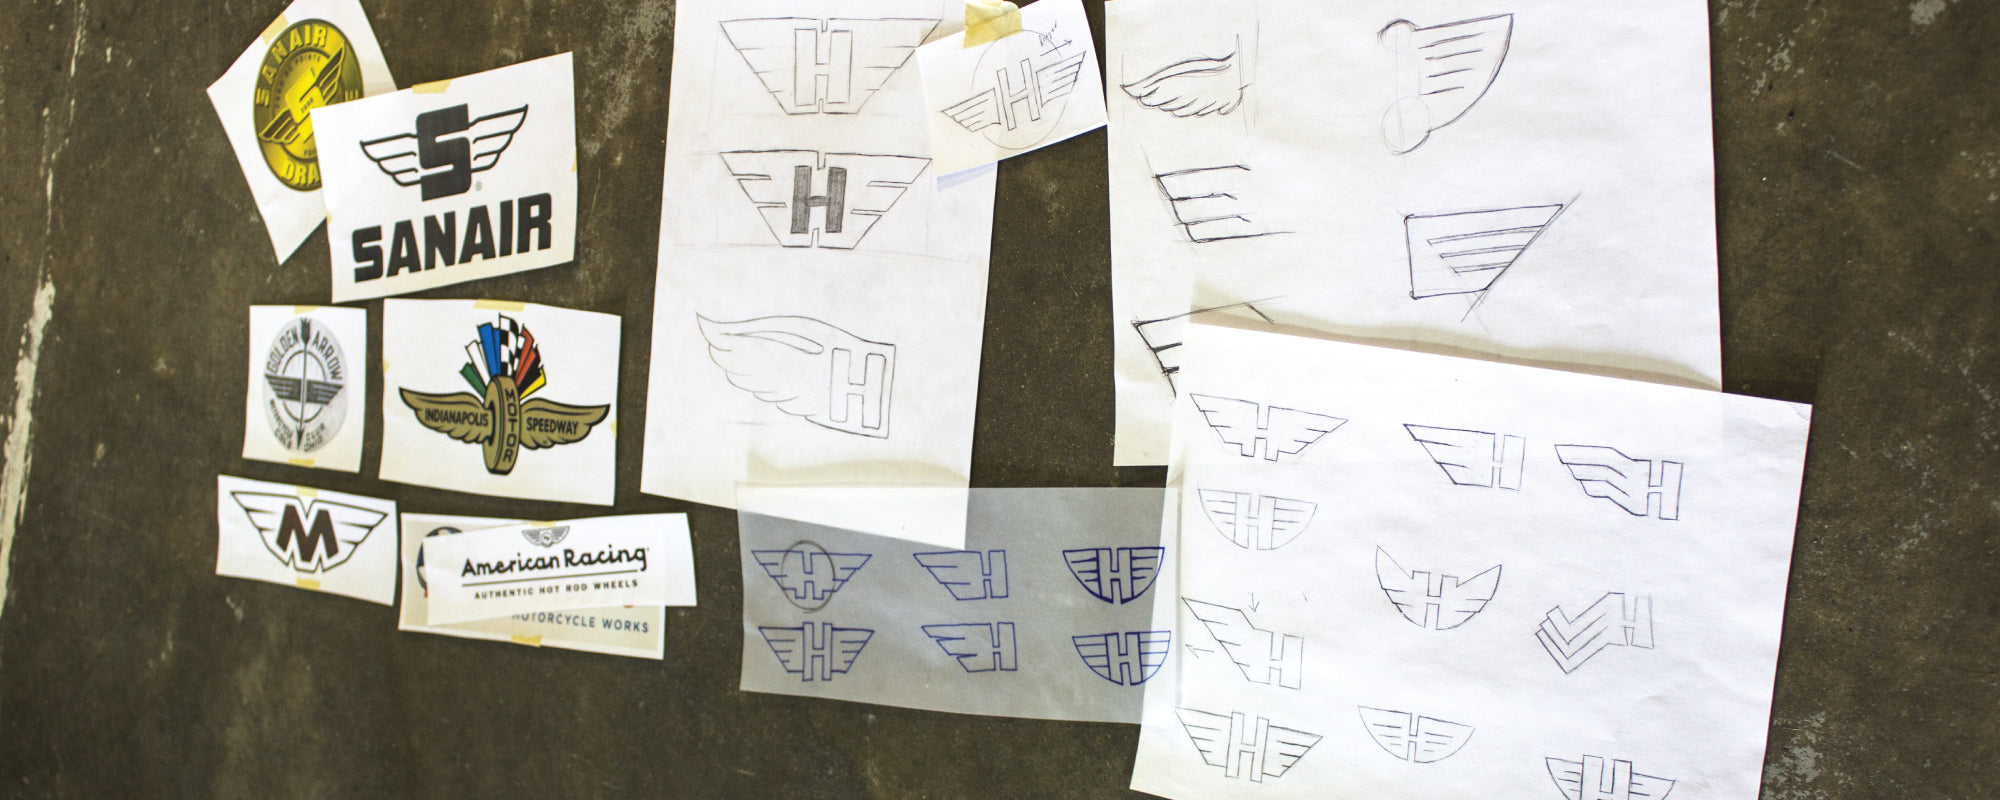 Examples of sketches for artwork and logo creation designed by Strange Planet Printing of Brockton, MA